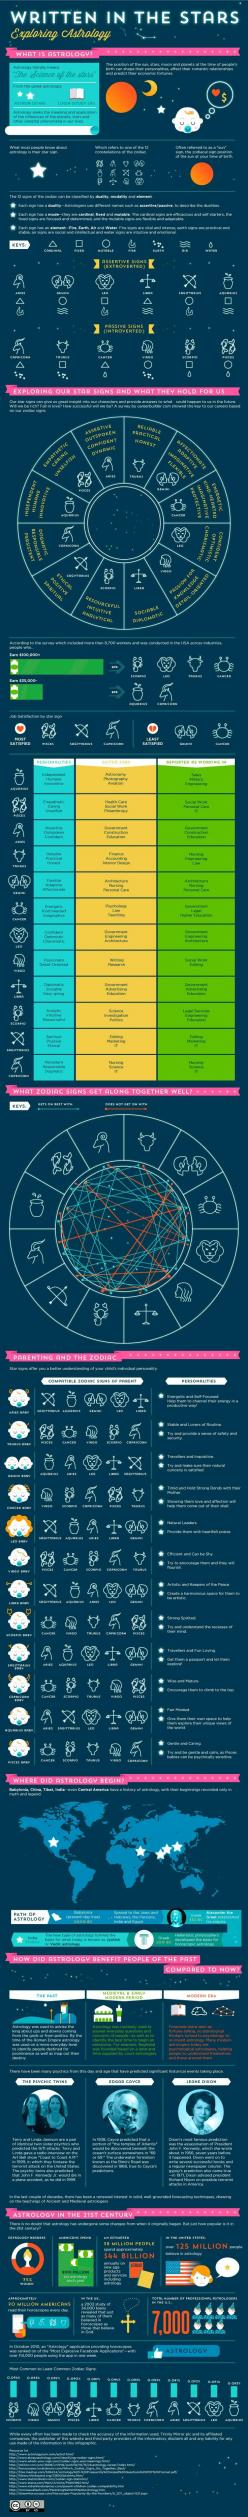 #INFOgraphic > #Astrology 101 : People from Mirror Horoscopes Team compiled this infographic in an effort to give us a better understanding of what each star sign means in terms of characteristics, relationships and even the jobs we choose. Following t